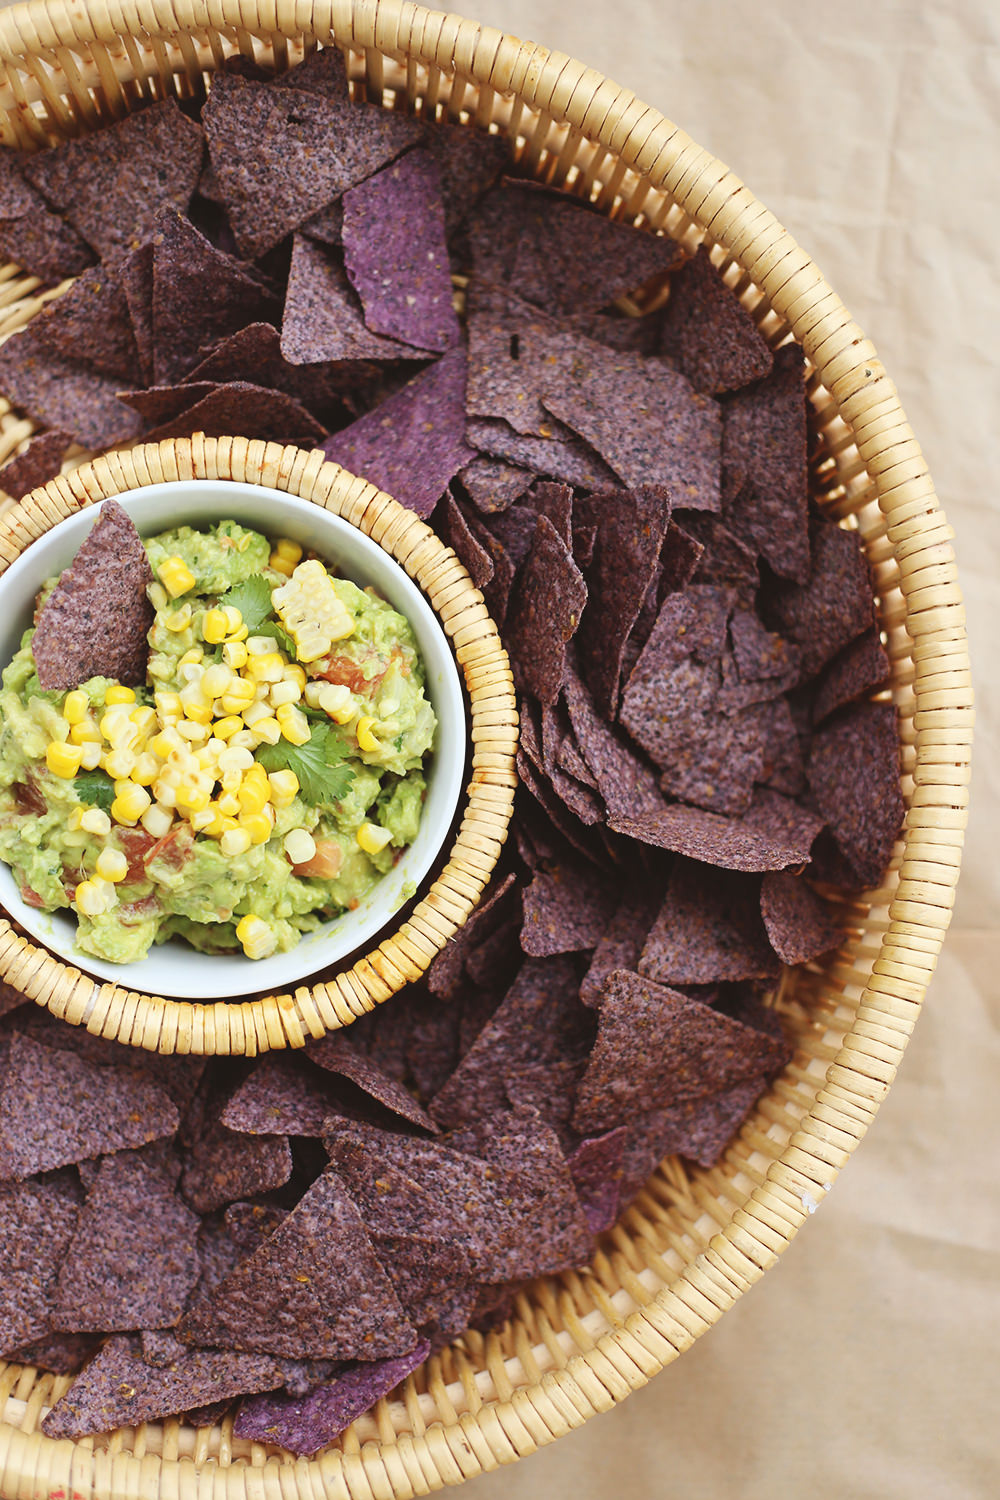 Grill one ear of corn and cut off the kernels to add to your guacamole recipe. To see other ways of dressing up your dip, go on the blog! // Lily & Val Living!